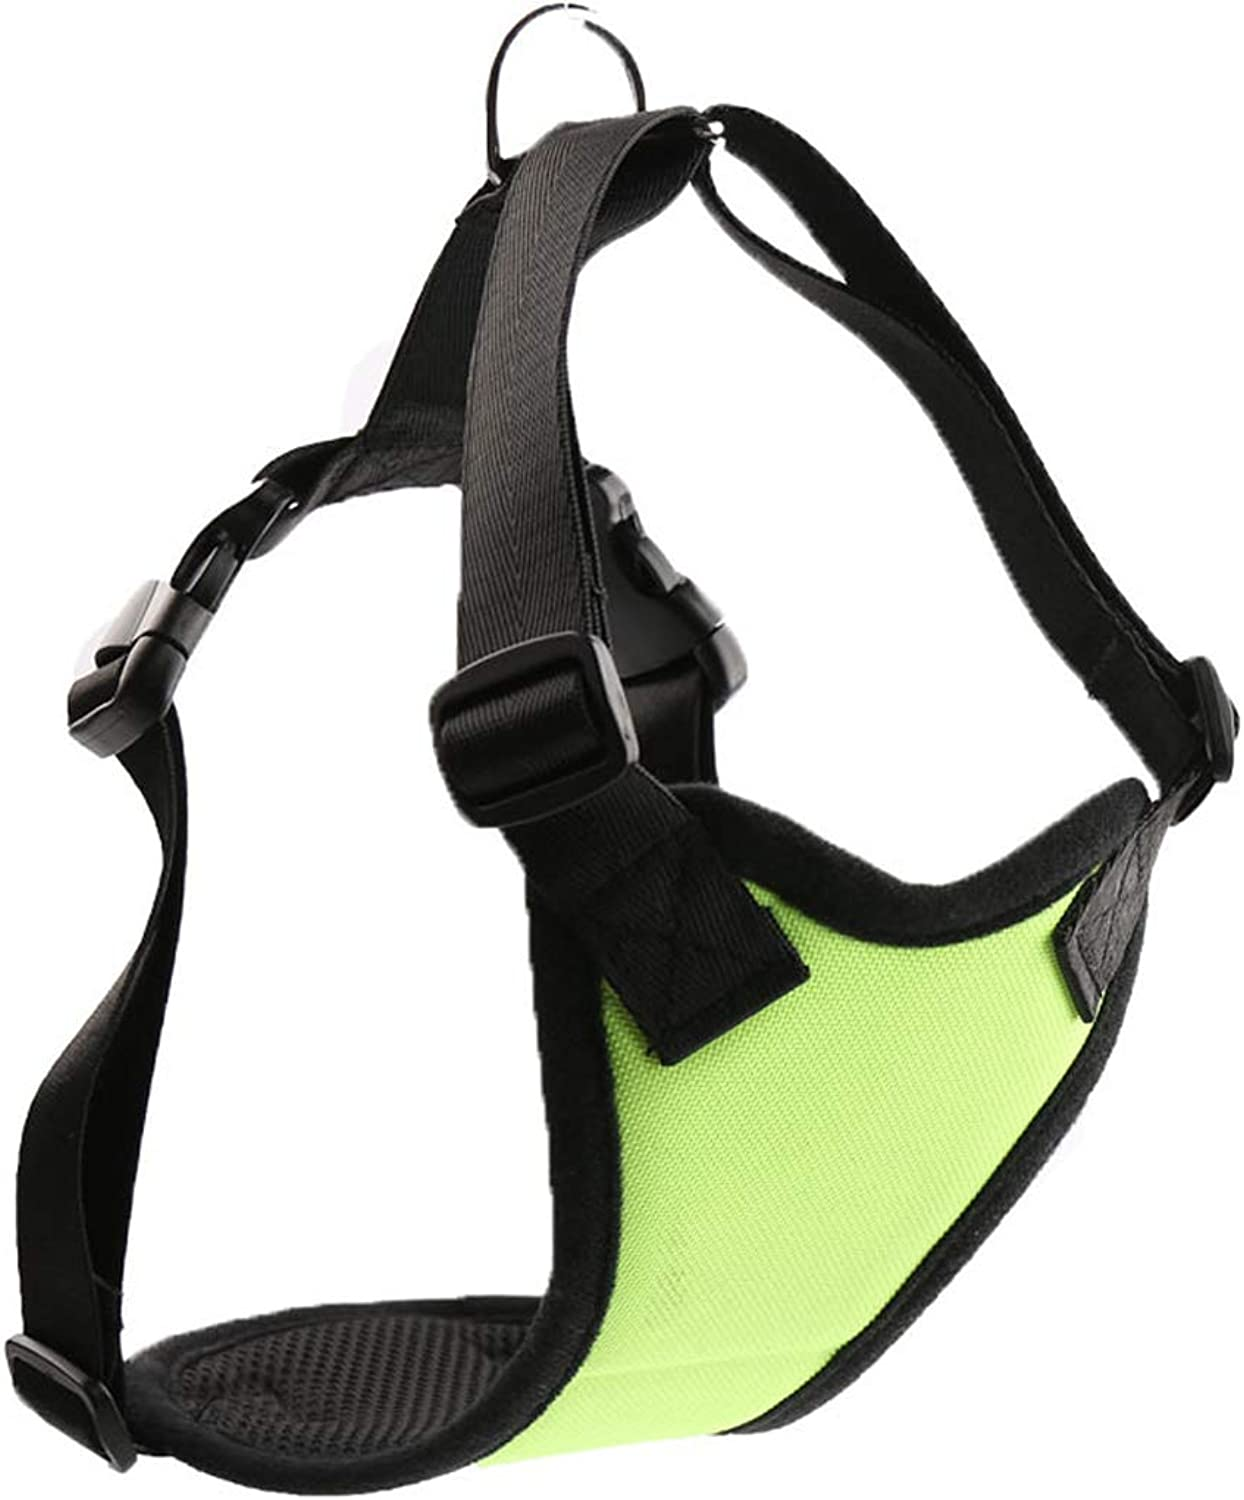 Pet Leash Dog Chest Strap, Dog Chain Hyena Rope Bullfighting Soft Traction Belt Ventilation for Small and Medium Dog Law (color   Green, Size   L)